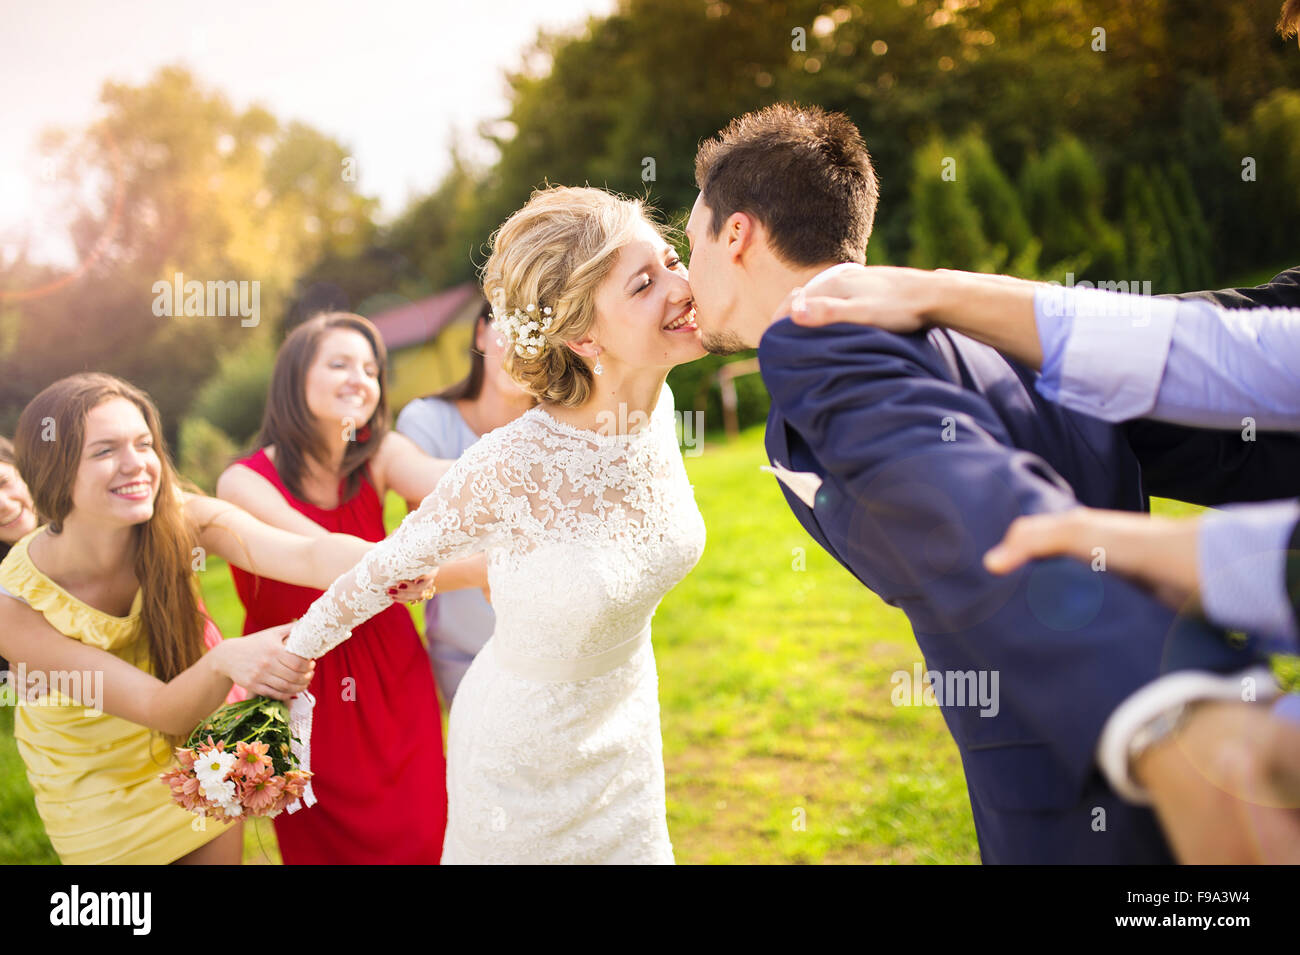 Funny portrait of newlywed couple kissing, bridesmaids and groomsmen pulling them away in green sunny park - Stock Image